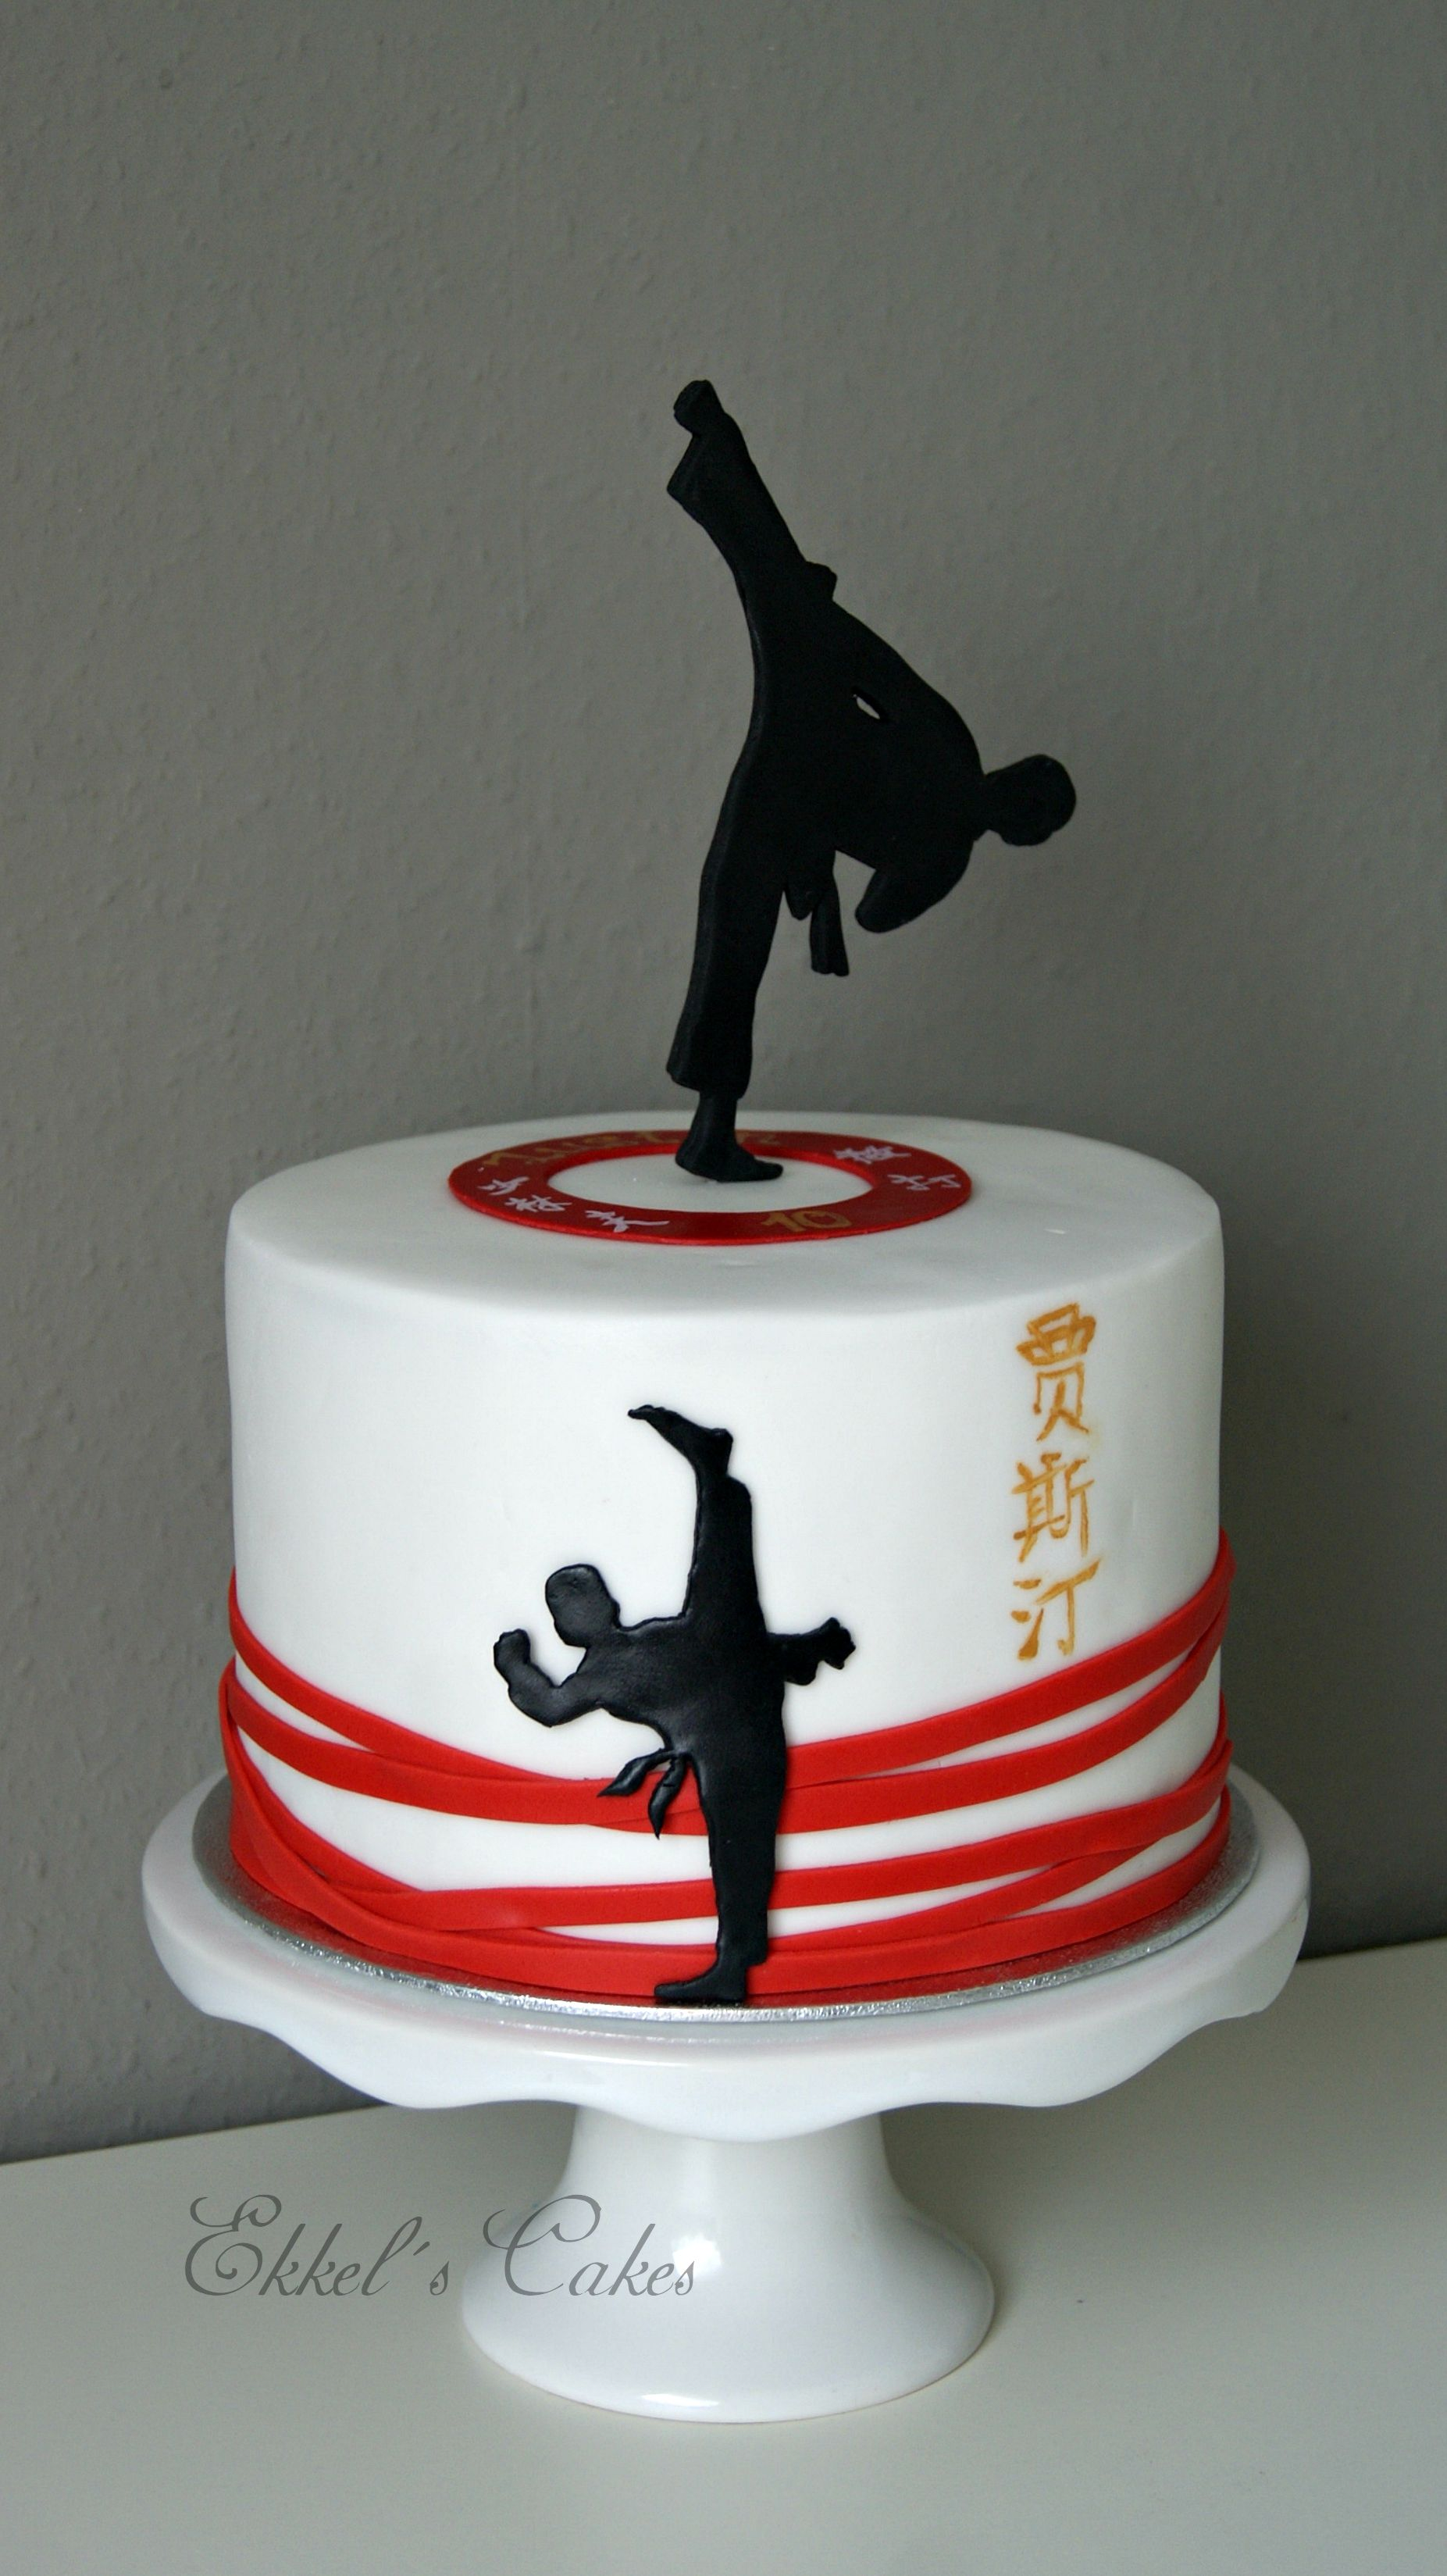 Incredible Kung Fu Taekwondo Sport Cake Karate Cake Ninja Birthday Cake Birthday Cards Printable Trancafe Filternl